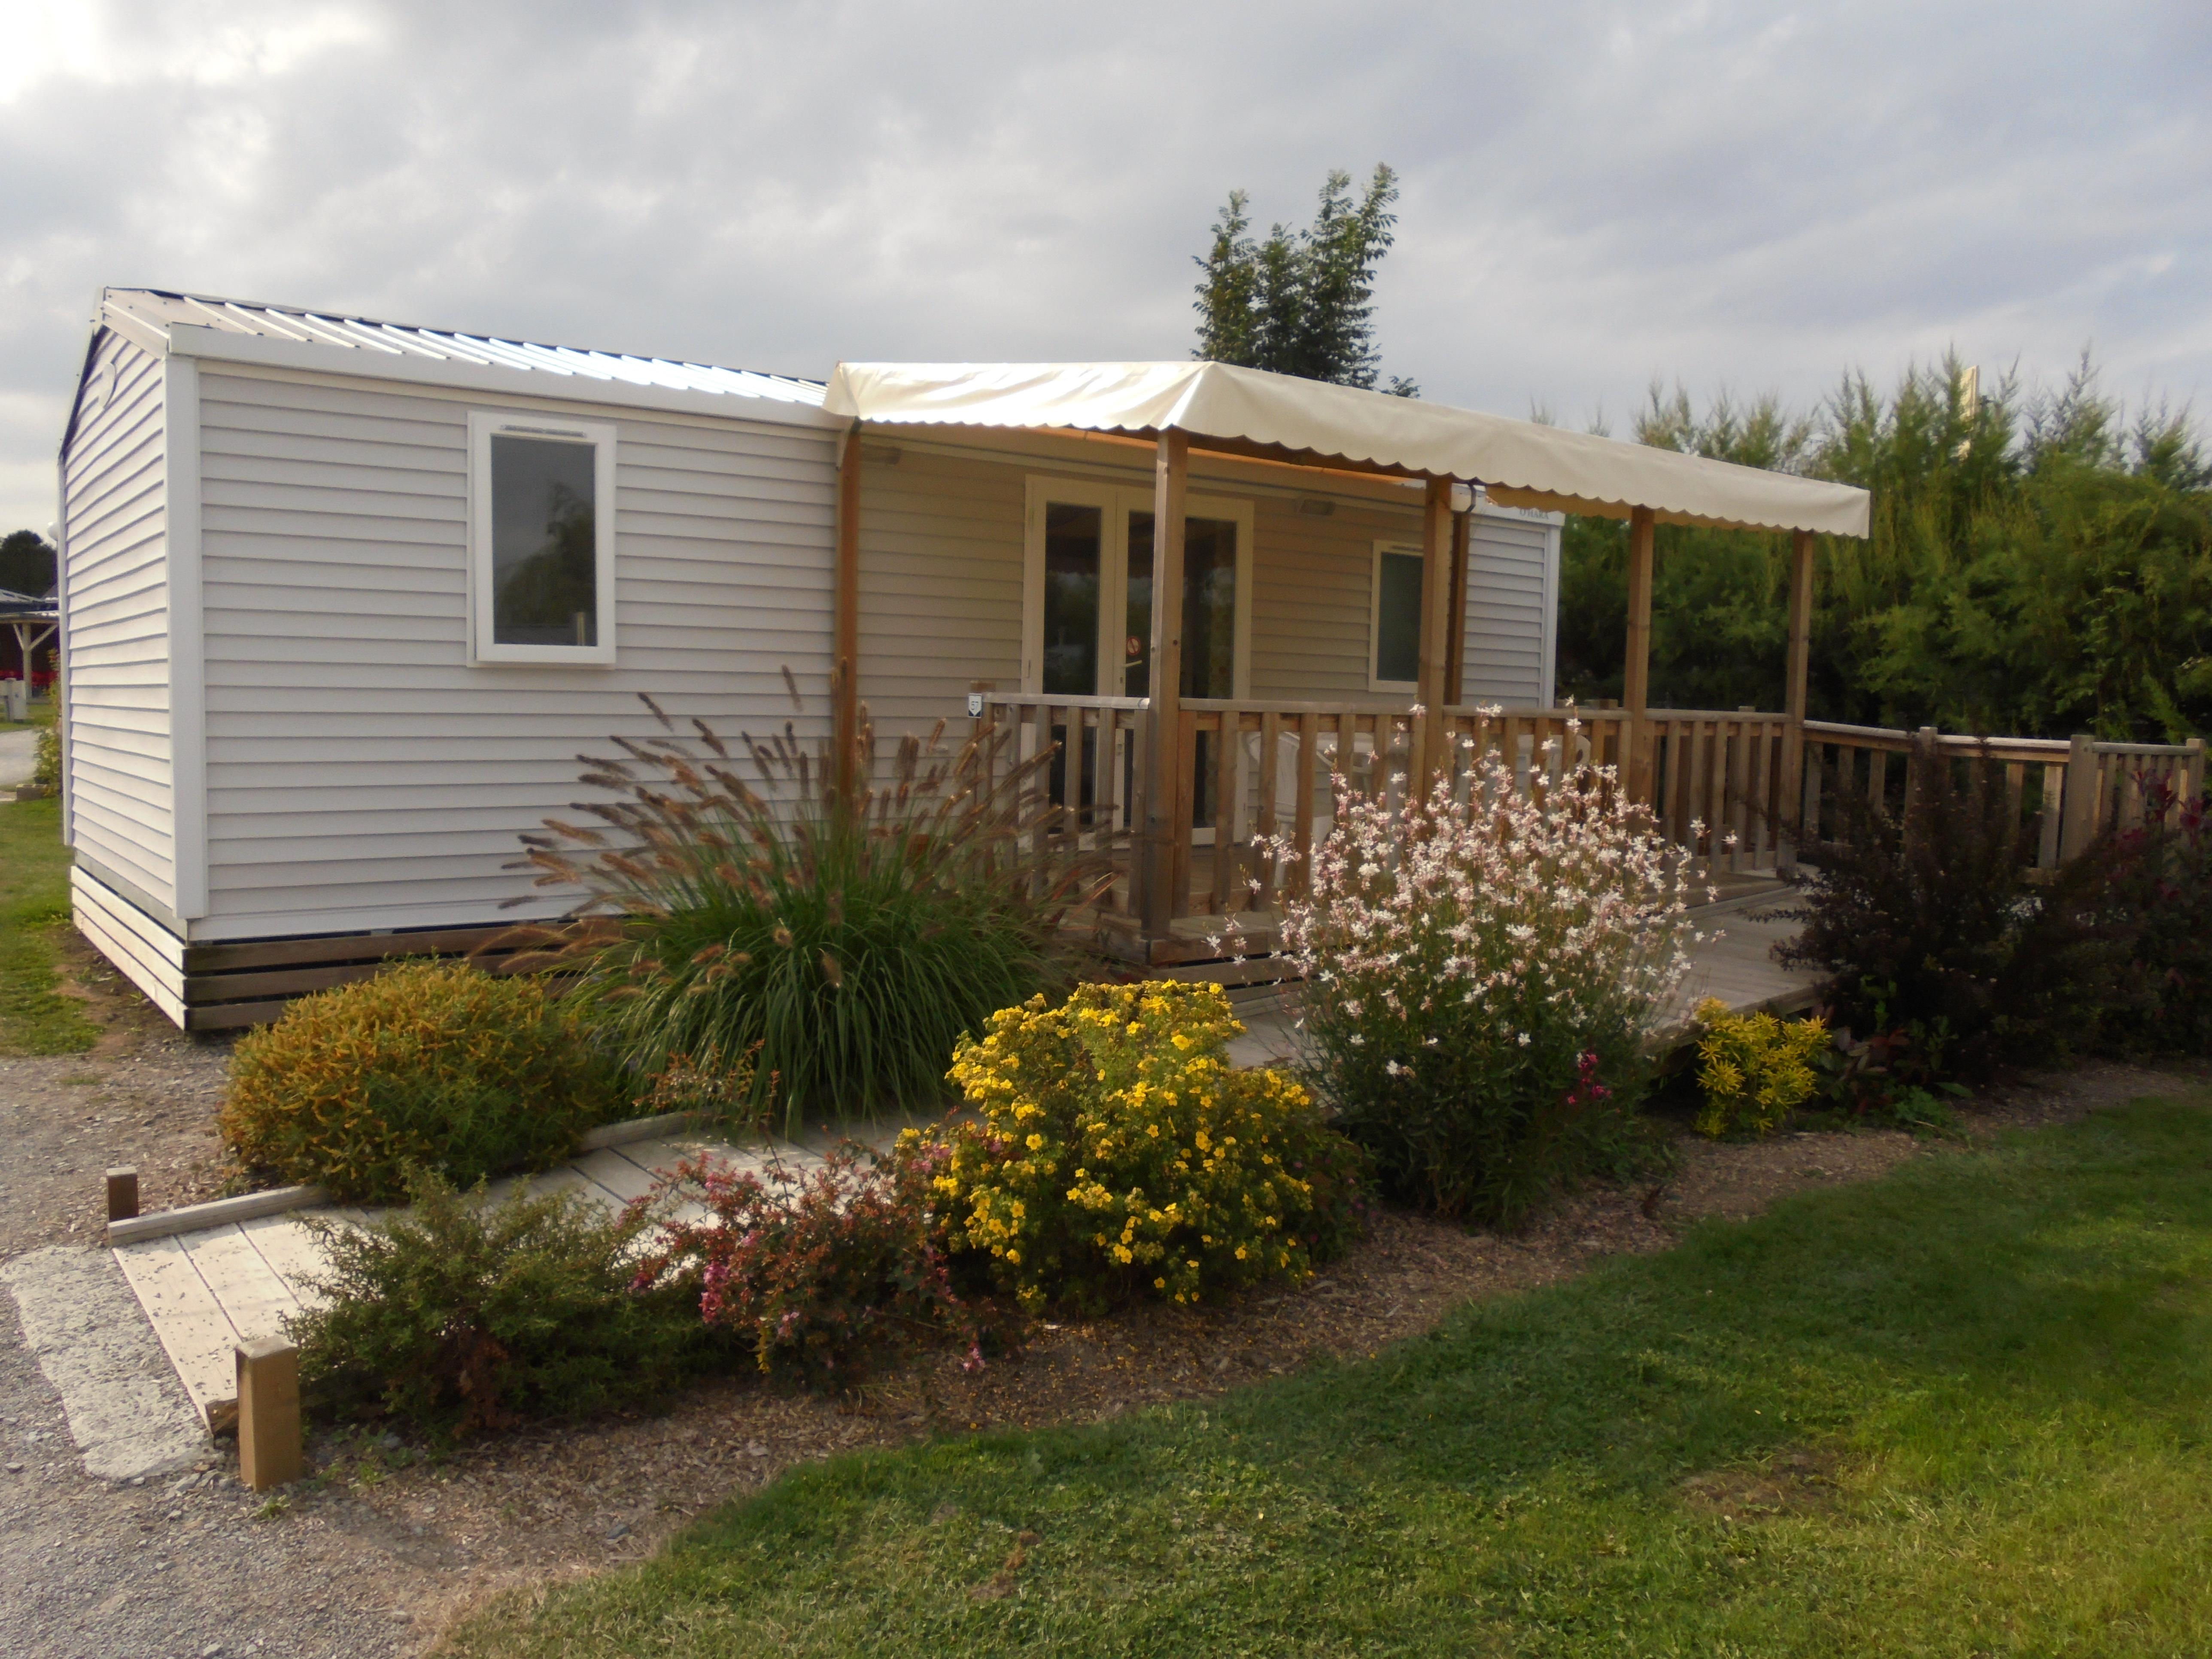 Location - Mobil Home 2 Chambres - Pmr - Camping Aux Pommiers